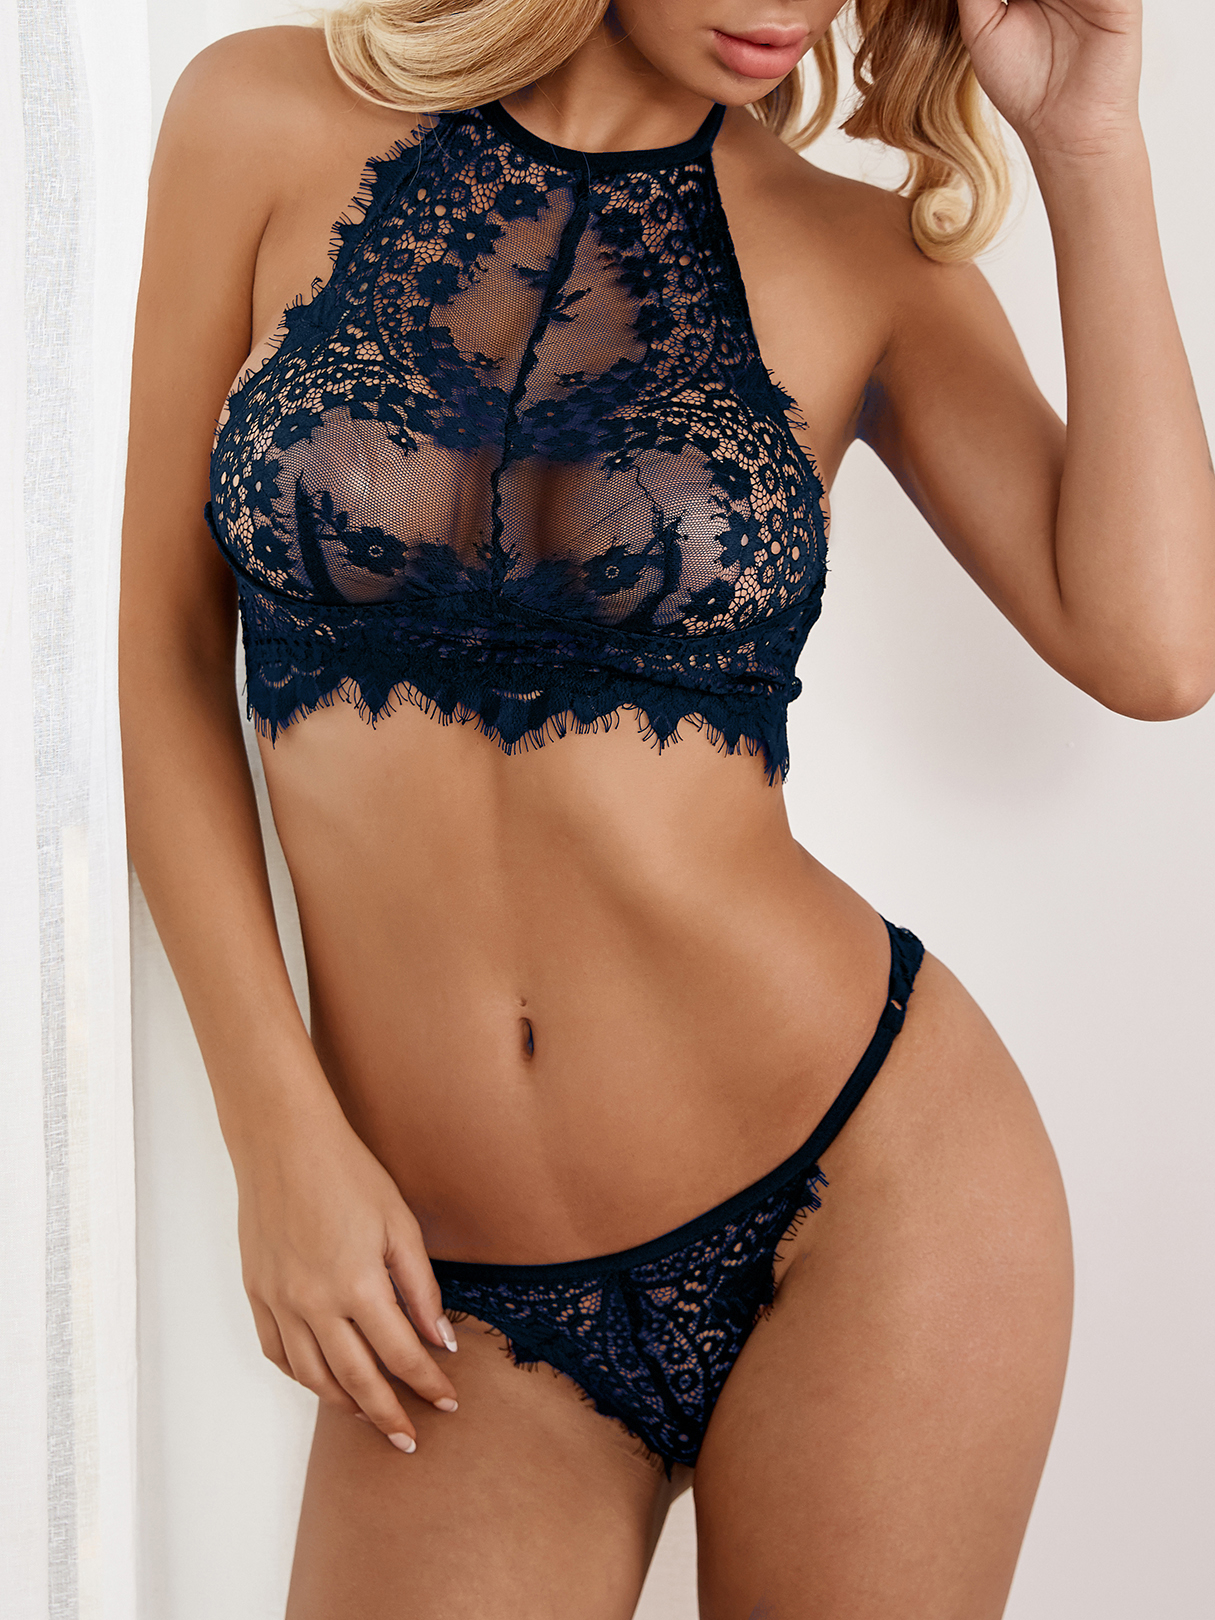 Dark Blue Sexy Delicate See-through Eyelash Trim Halter Lingerie Set without Stockings sexy black lace lingerie set with no falsies